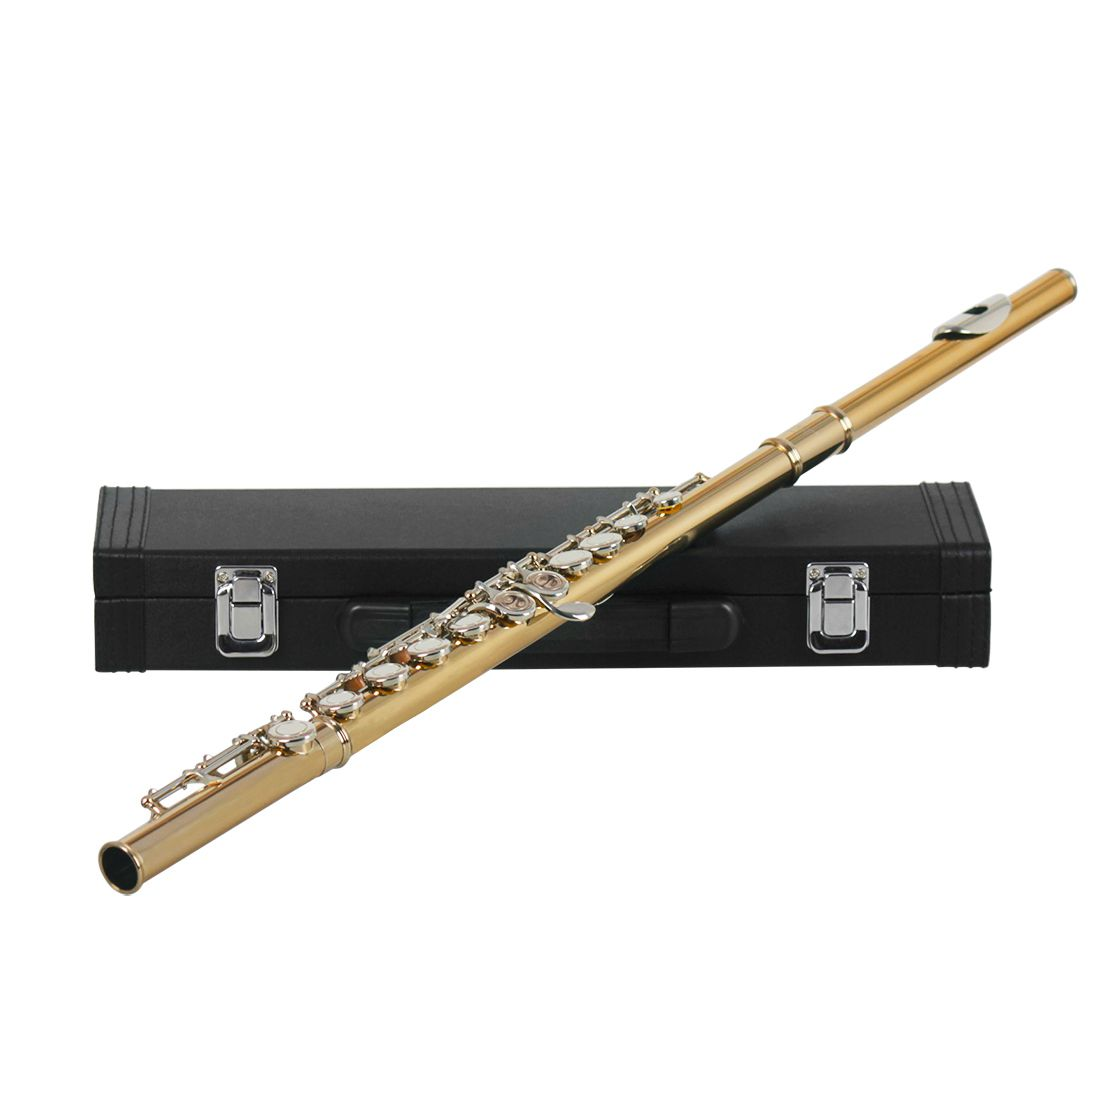 Western Concert Flute 16 Holes C Key Cupronickel Musical Instrument With Cleaning Cloth Stick Gloves Screwdriver Gold-MUSIC